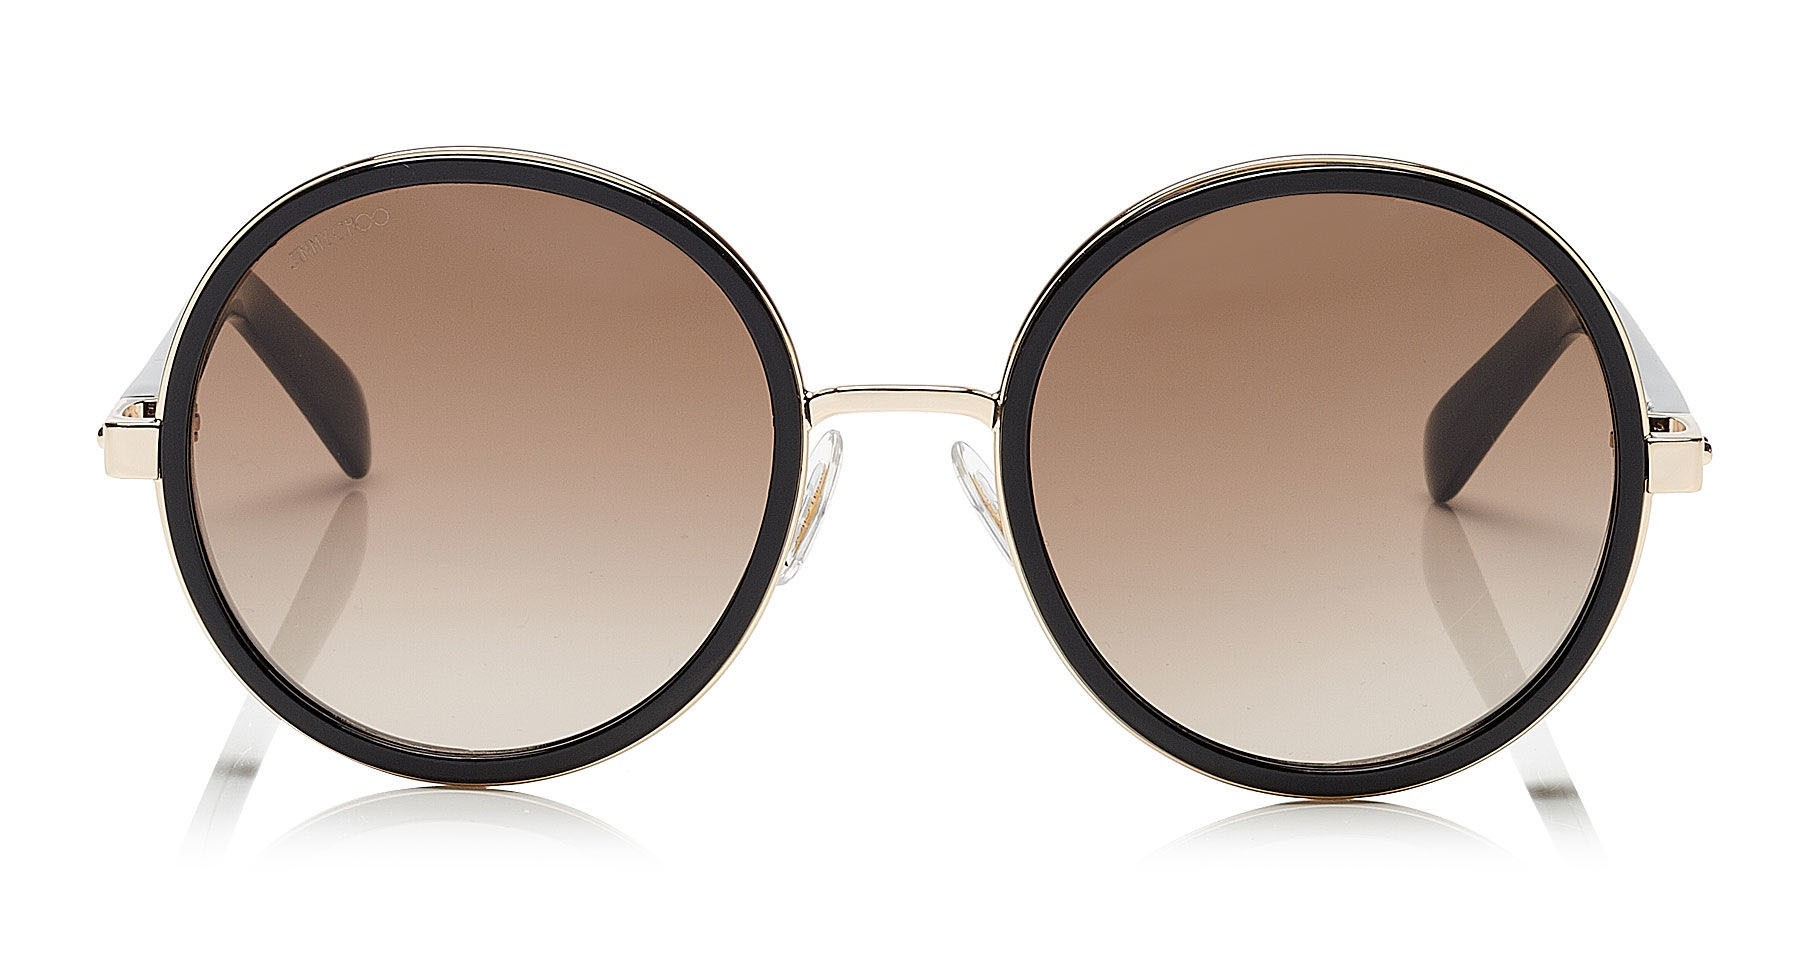 3c80d5479c Jimmy Choo - Andie - Rose Gold and Black Round Sunglasses with Gold and  Silver Fabric Detailing - Jimmy Choo Eyewear